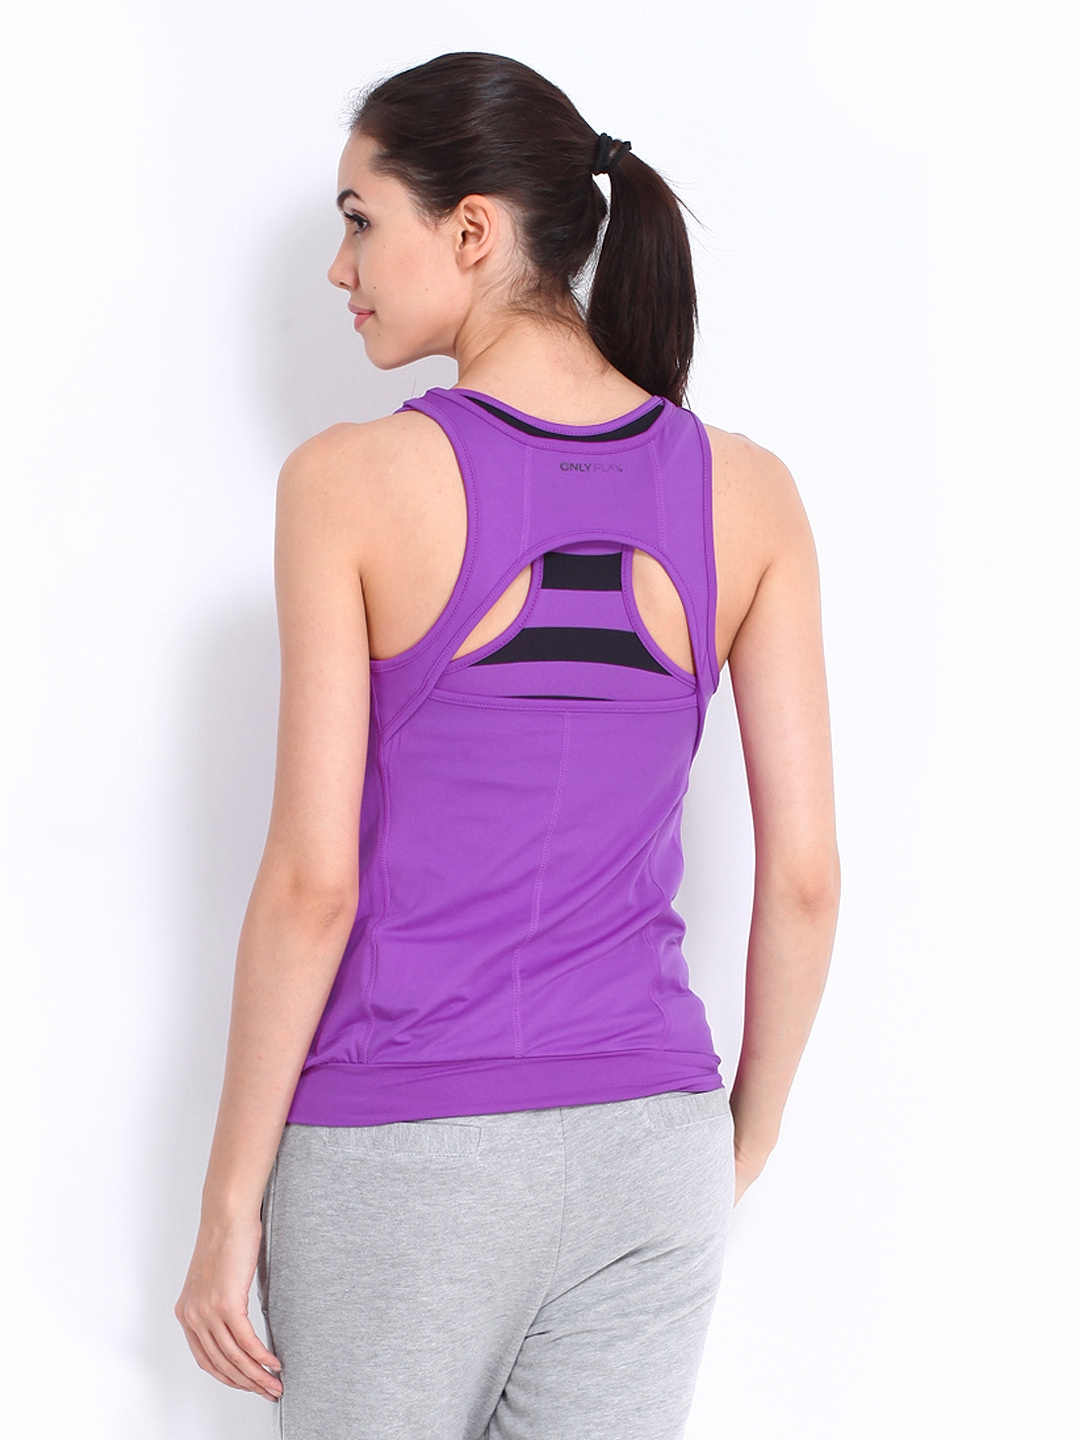 Shop S&S Activewear for Purples, Purple, Tank, Tops, and earn free shipping with orders over $ One and two-day shipping options available.